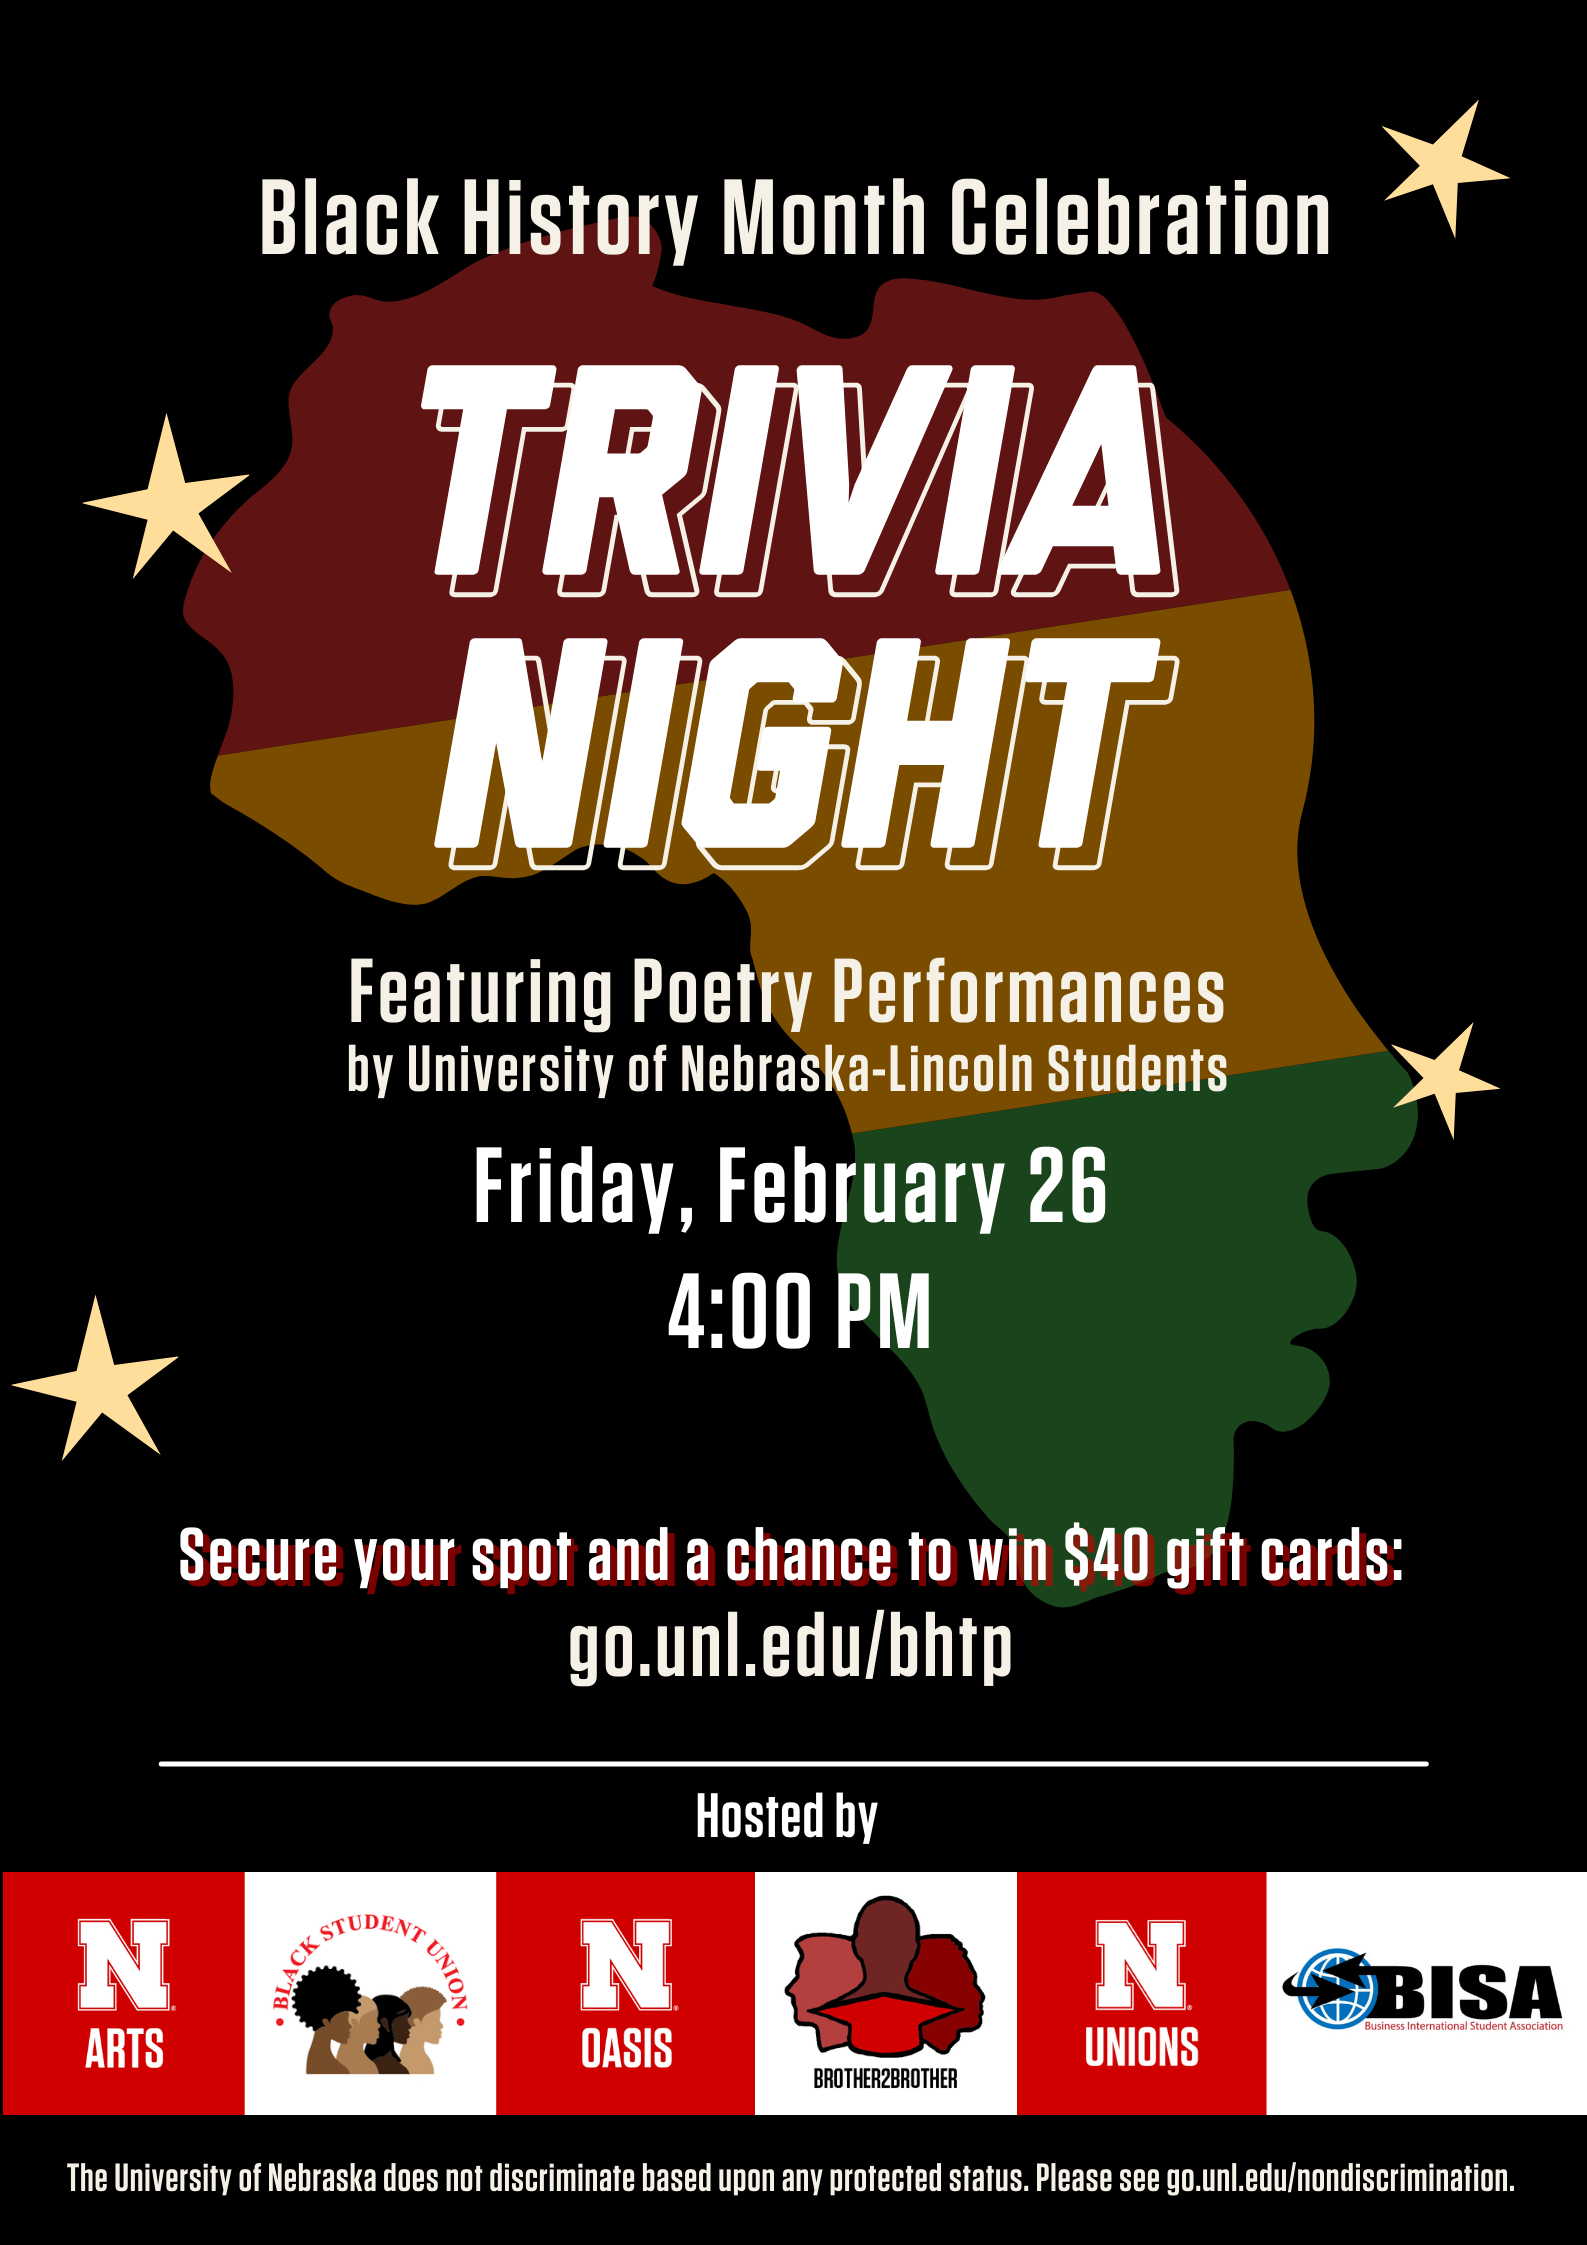 Join in for fun trivia games and poetry performances. Winners and lucky participants may win various prizes, and the top winner will receive a $40 gift card!